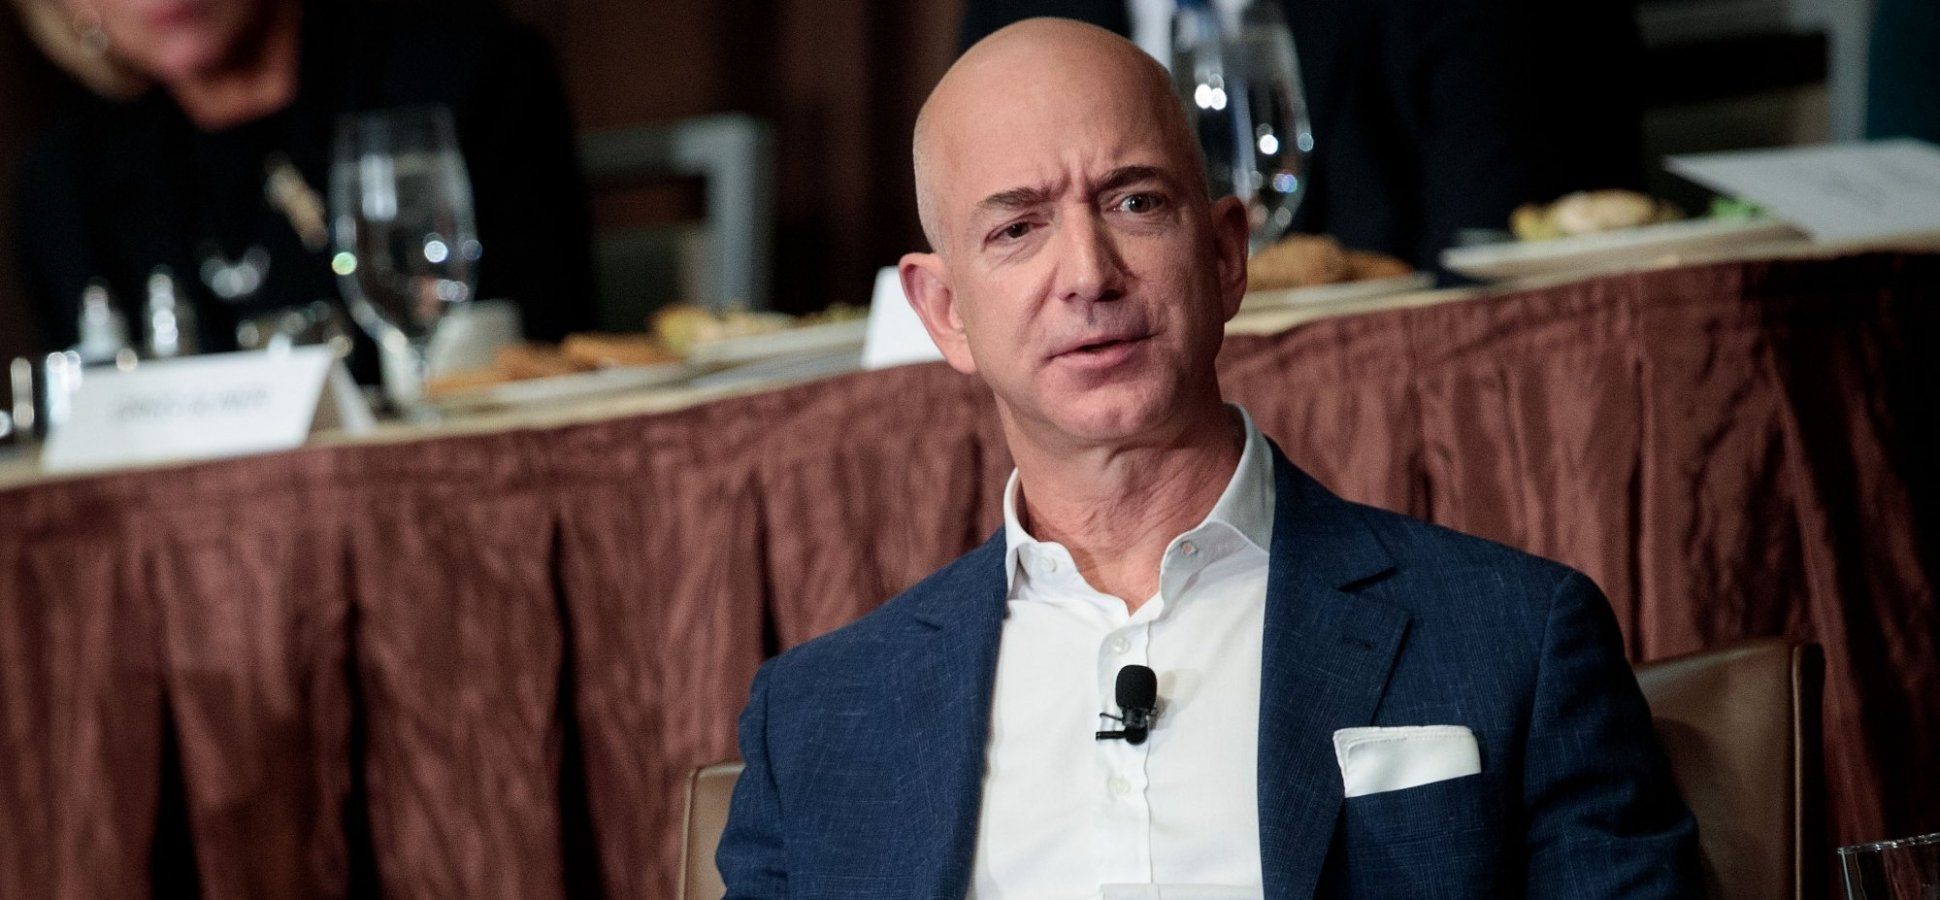 Jeff Bezos Was Asked What He Thought About The Increased Scrutiny Of